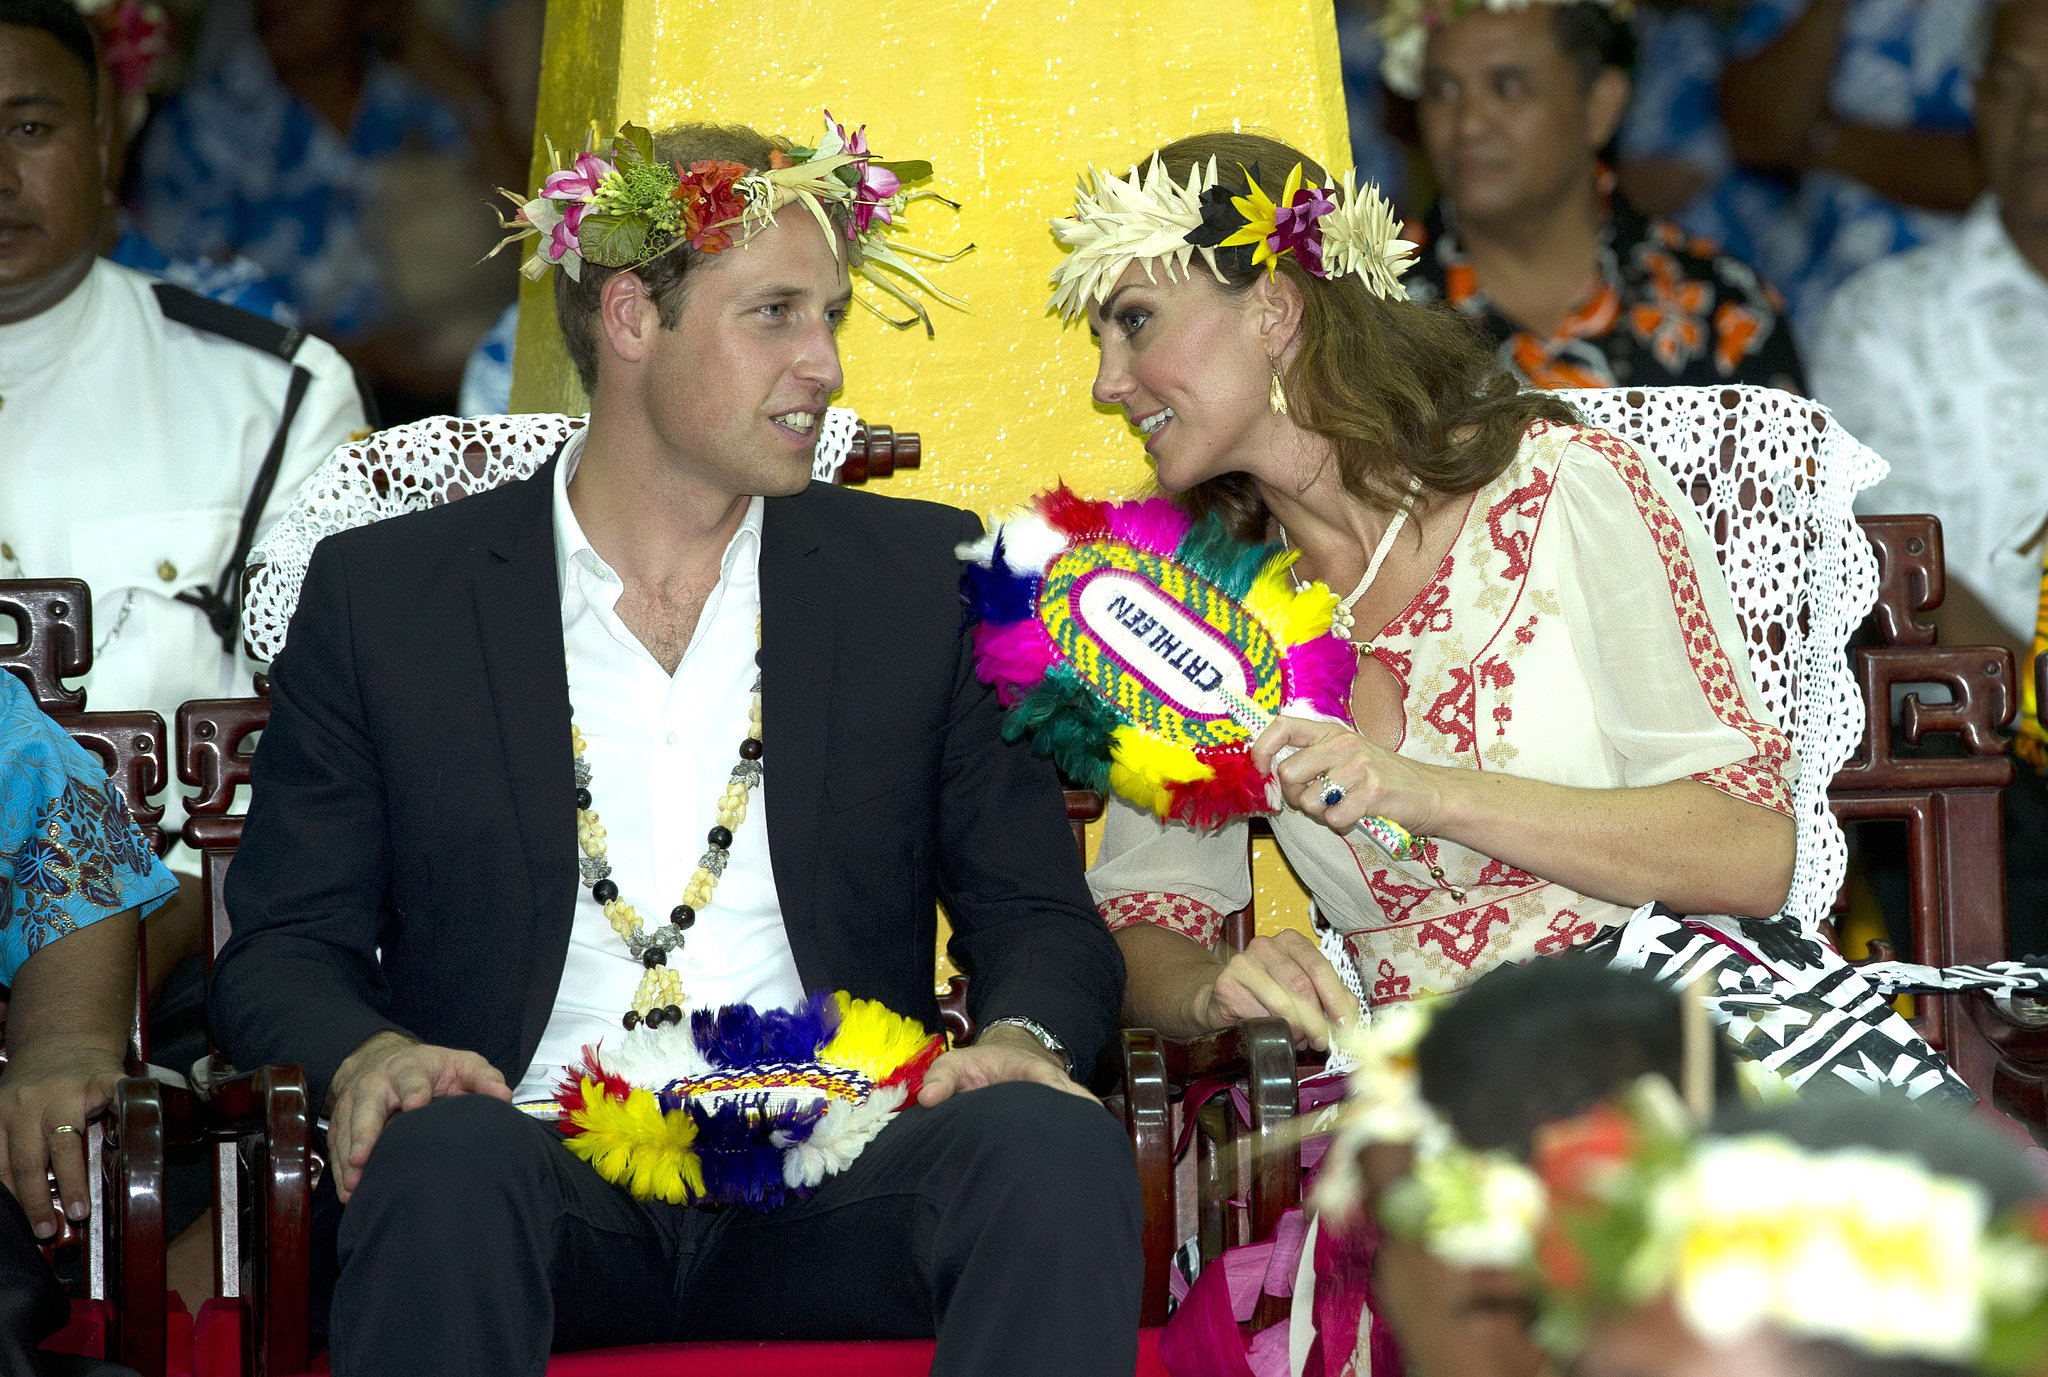 Prince William and Kate shared a private moment in Tuvalu during their 2012 visit.